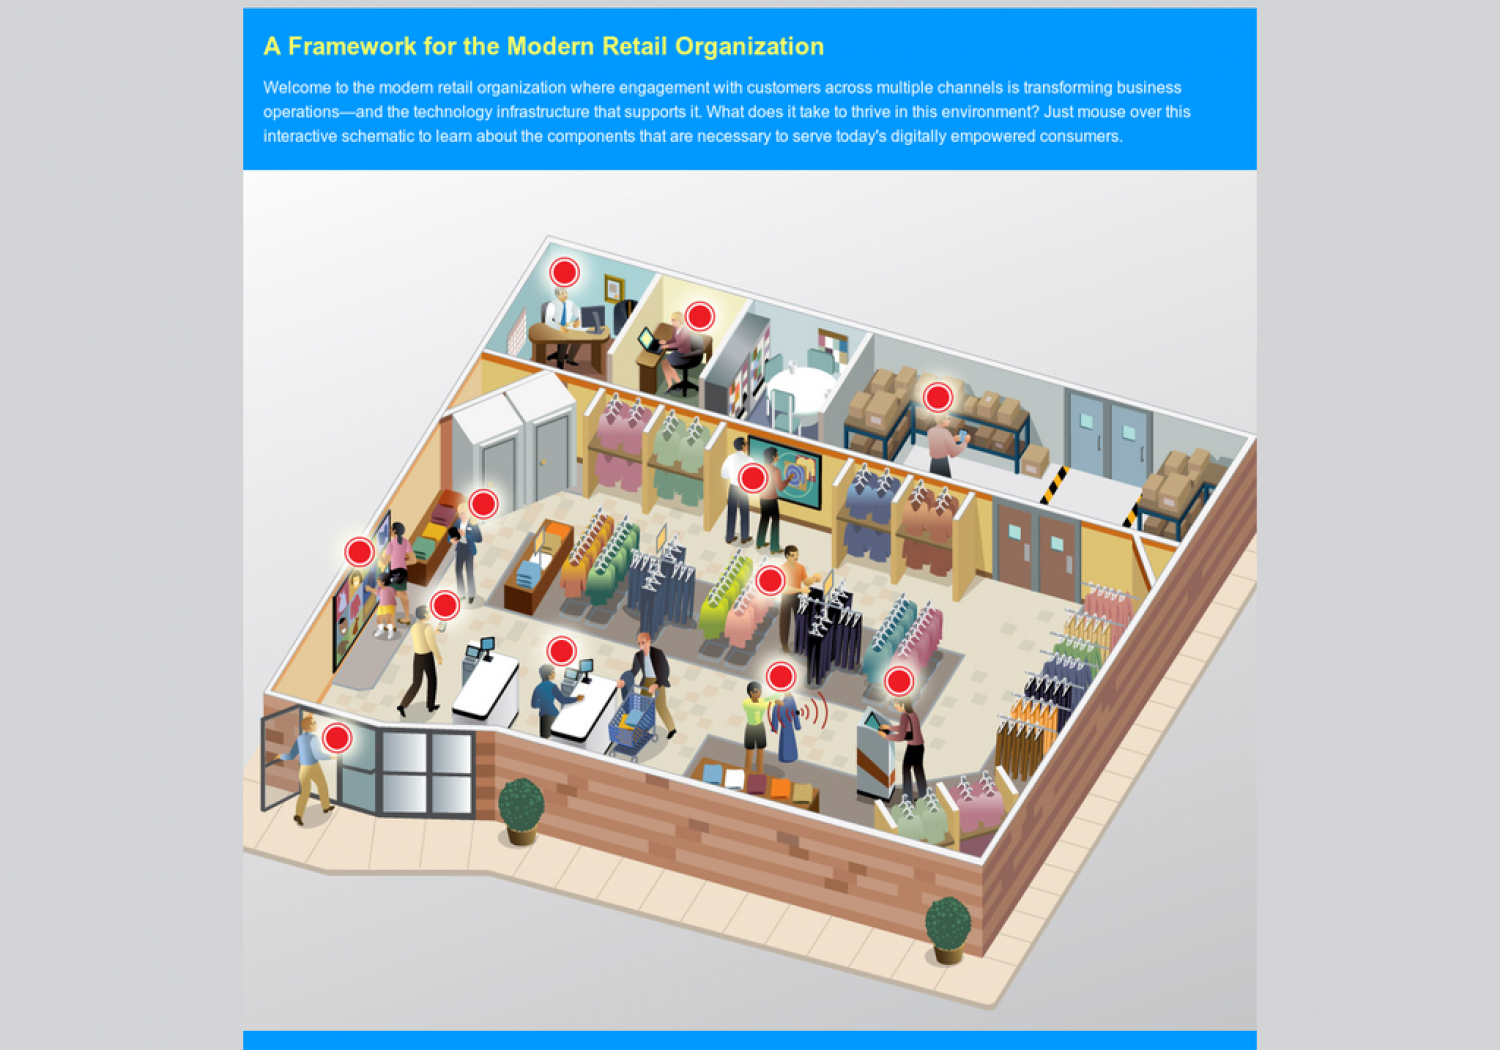 A Framework for the Modern Retail Organization Infographic